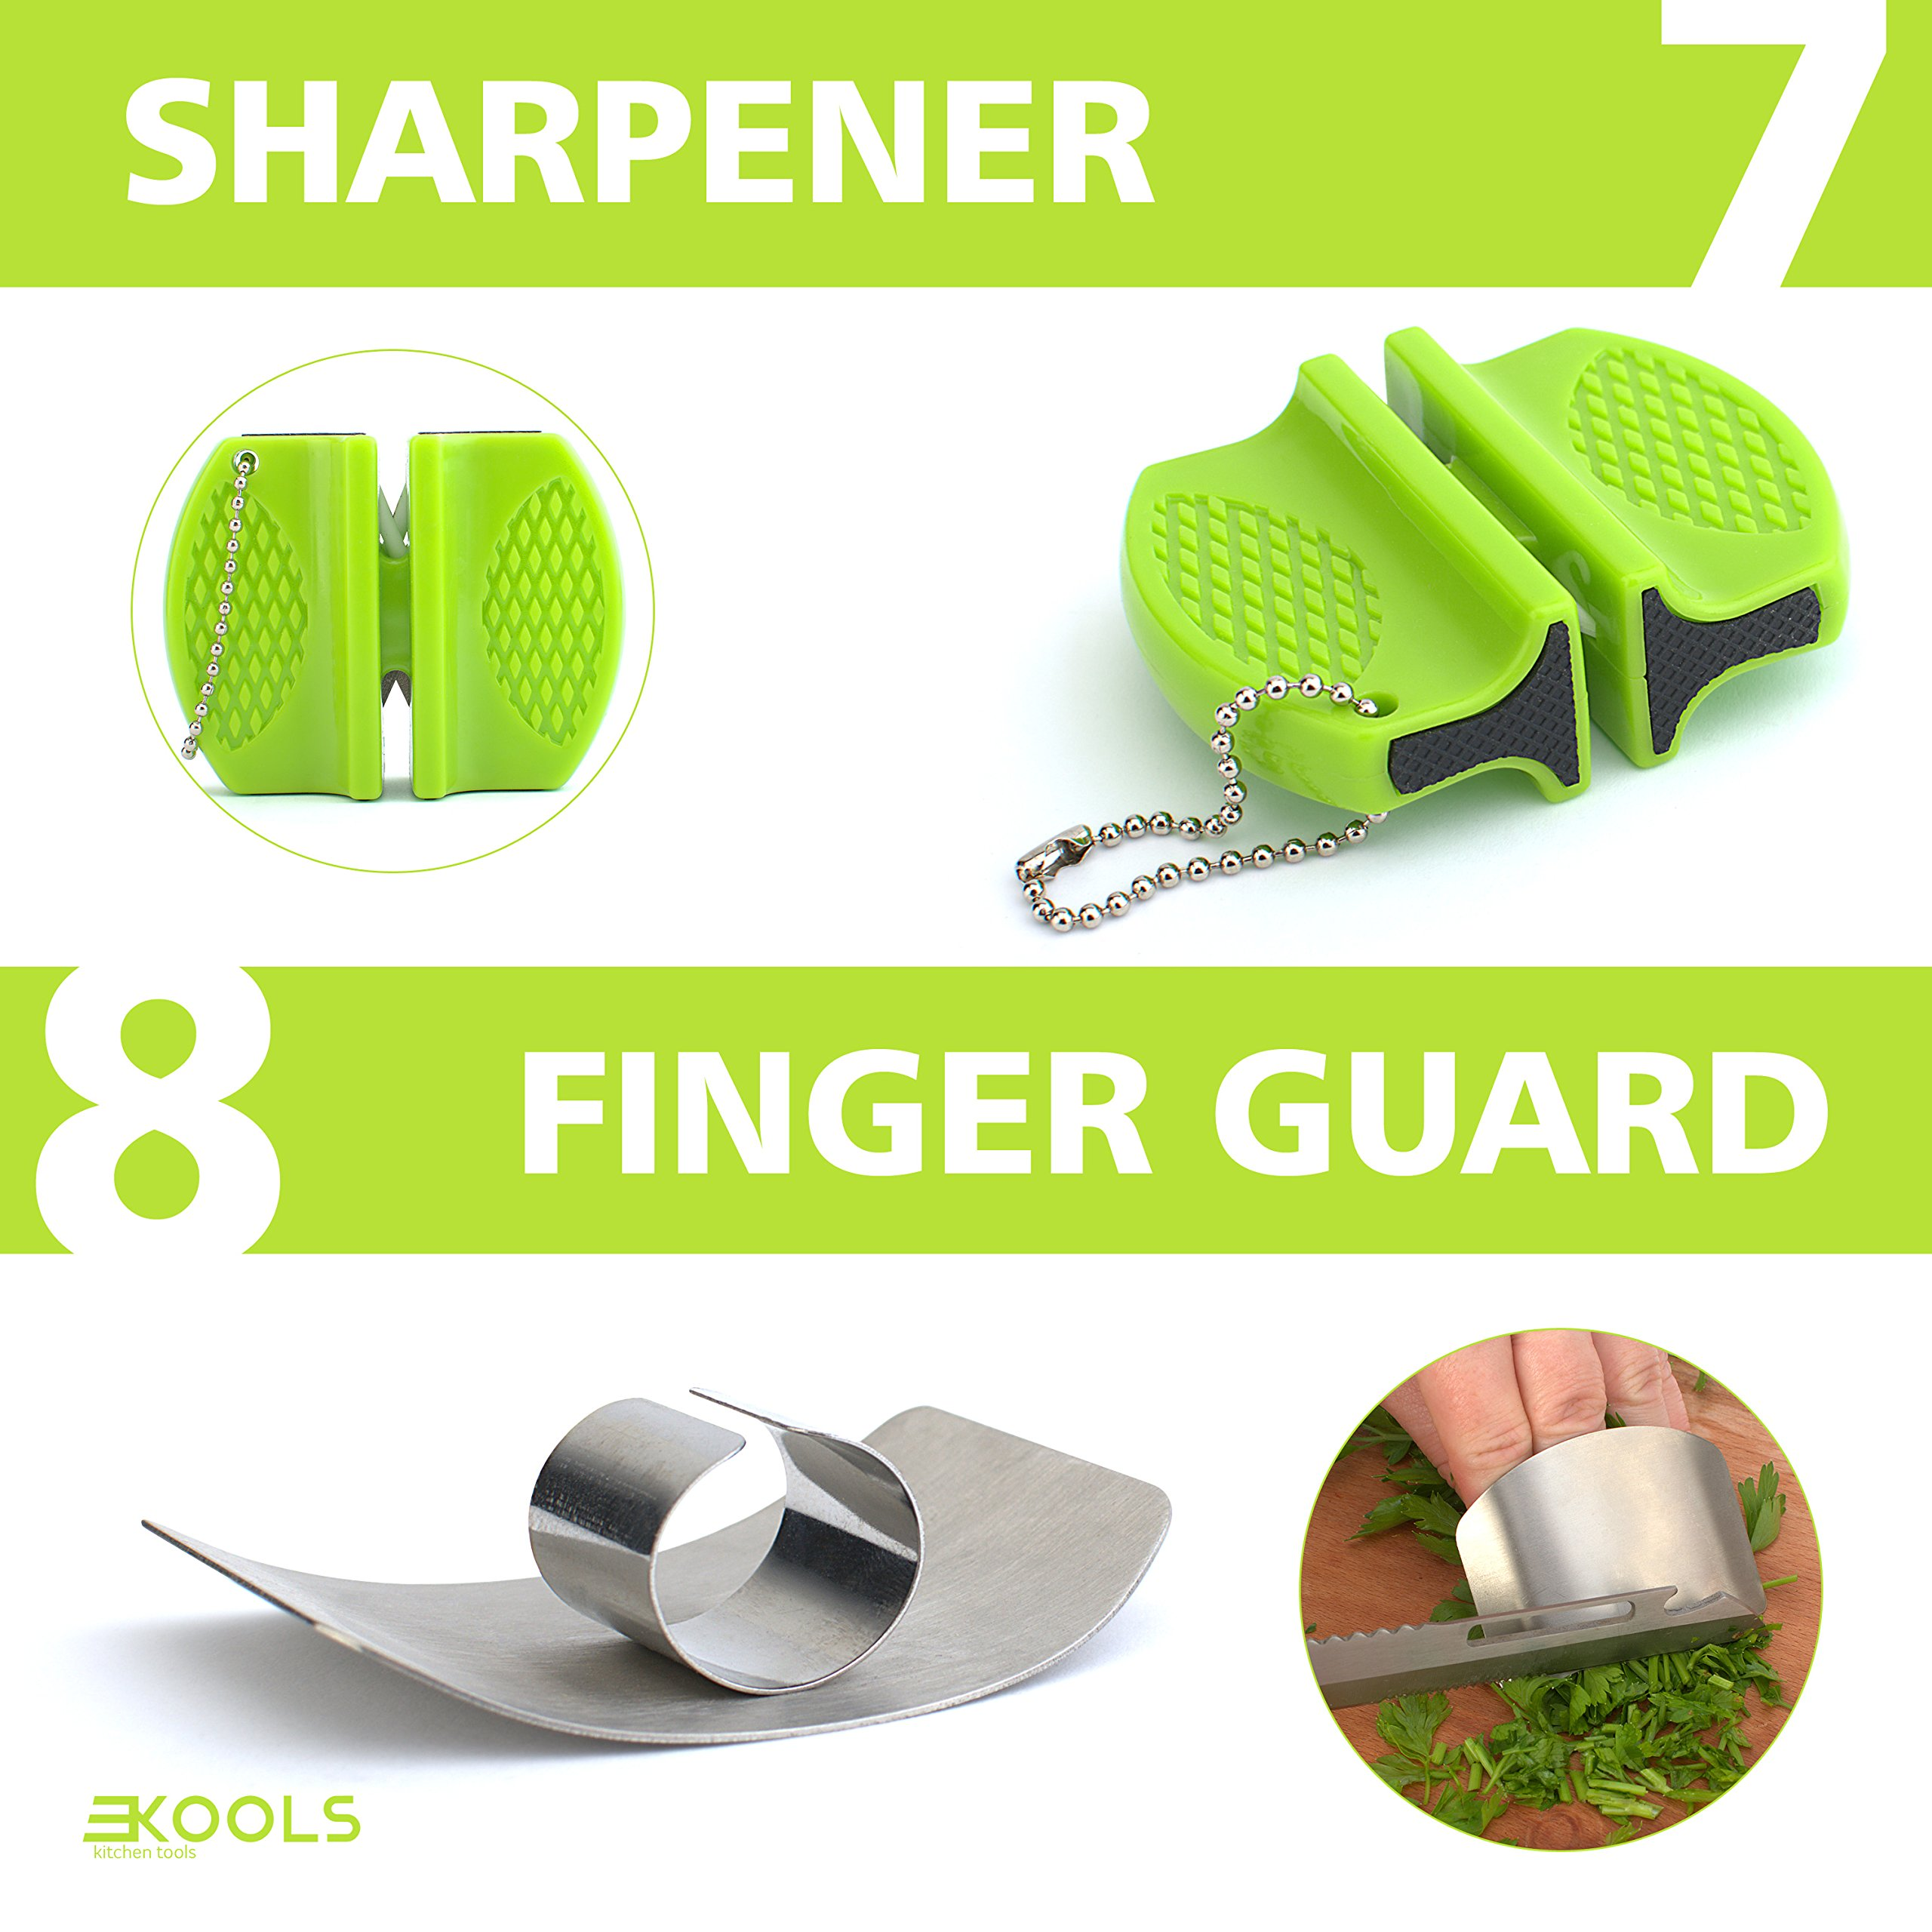 kools Clever 8-in-1 Food Chopper Set - with Chopping Board and Detachable Knife, Ideal as Vegetable and Meat Chopper or Slicer, Bottle Opener, Peeler, including Sharpener and Finger Guard by kools (Image #7)